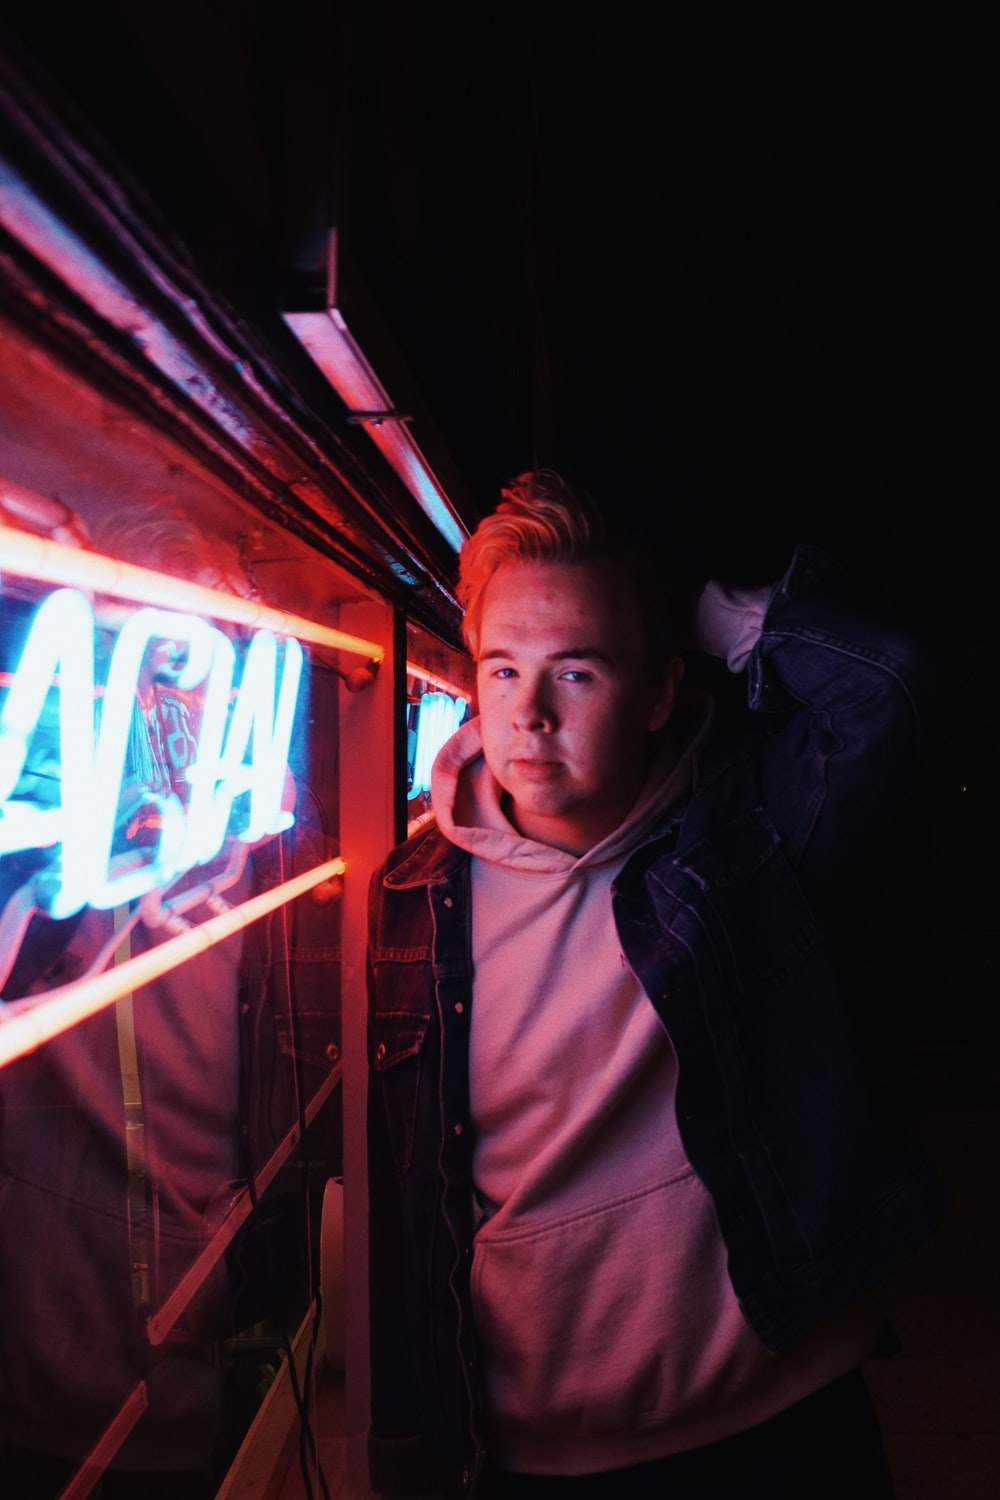 man standing beside neon light signage